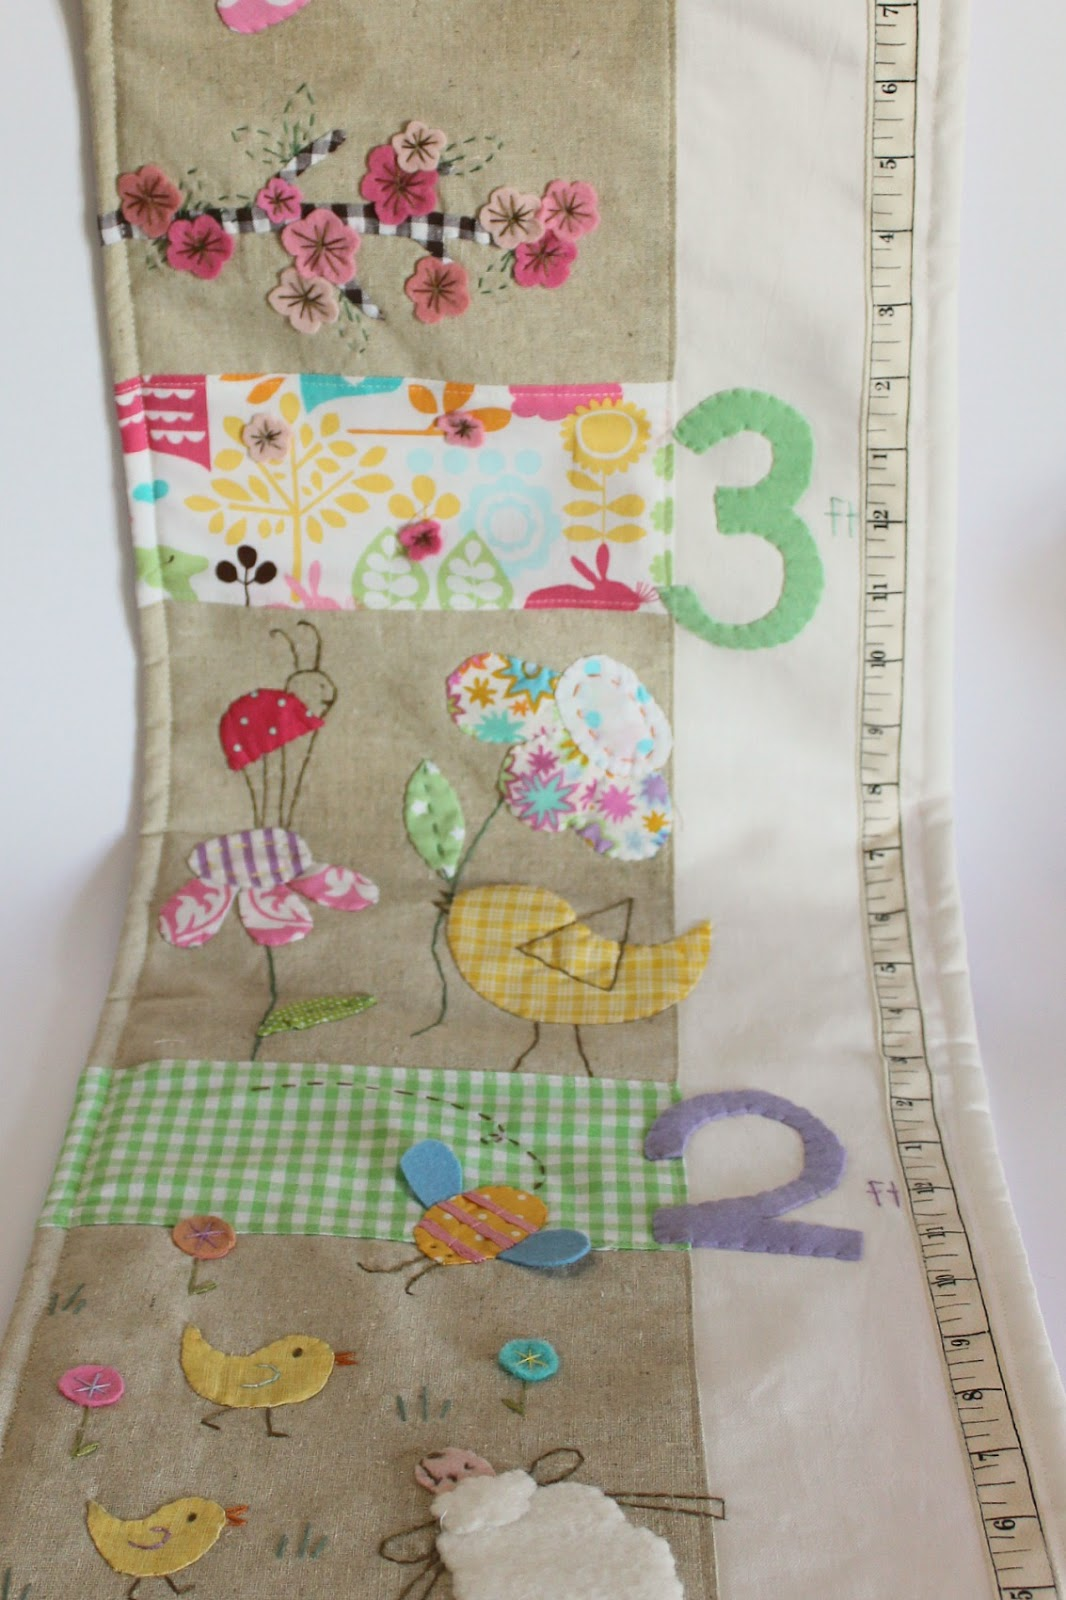 Roxy creations growth charts for twins these charts were made for sydney and alexandra who are twins their liked a previous chart i made with the seasons as these charts will be hanging near nvjuhfo Choice Image